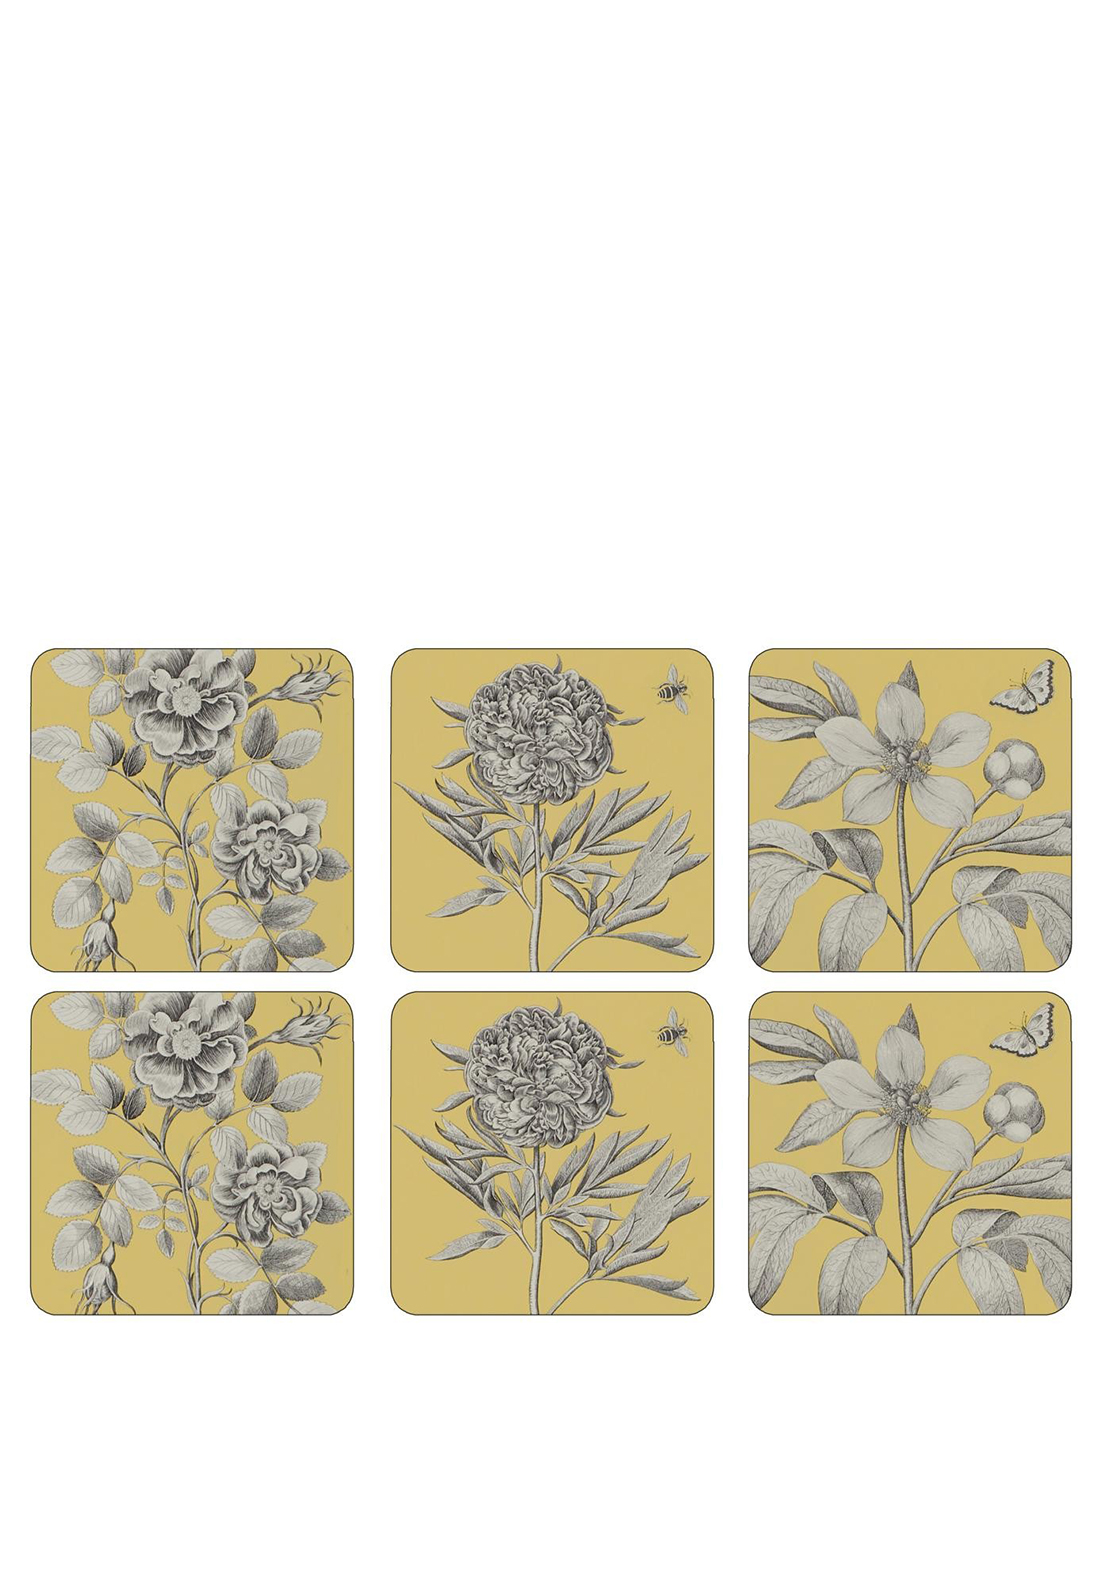 Pimpernel Etchings & Roses Set of 6 Coasters